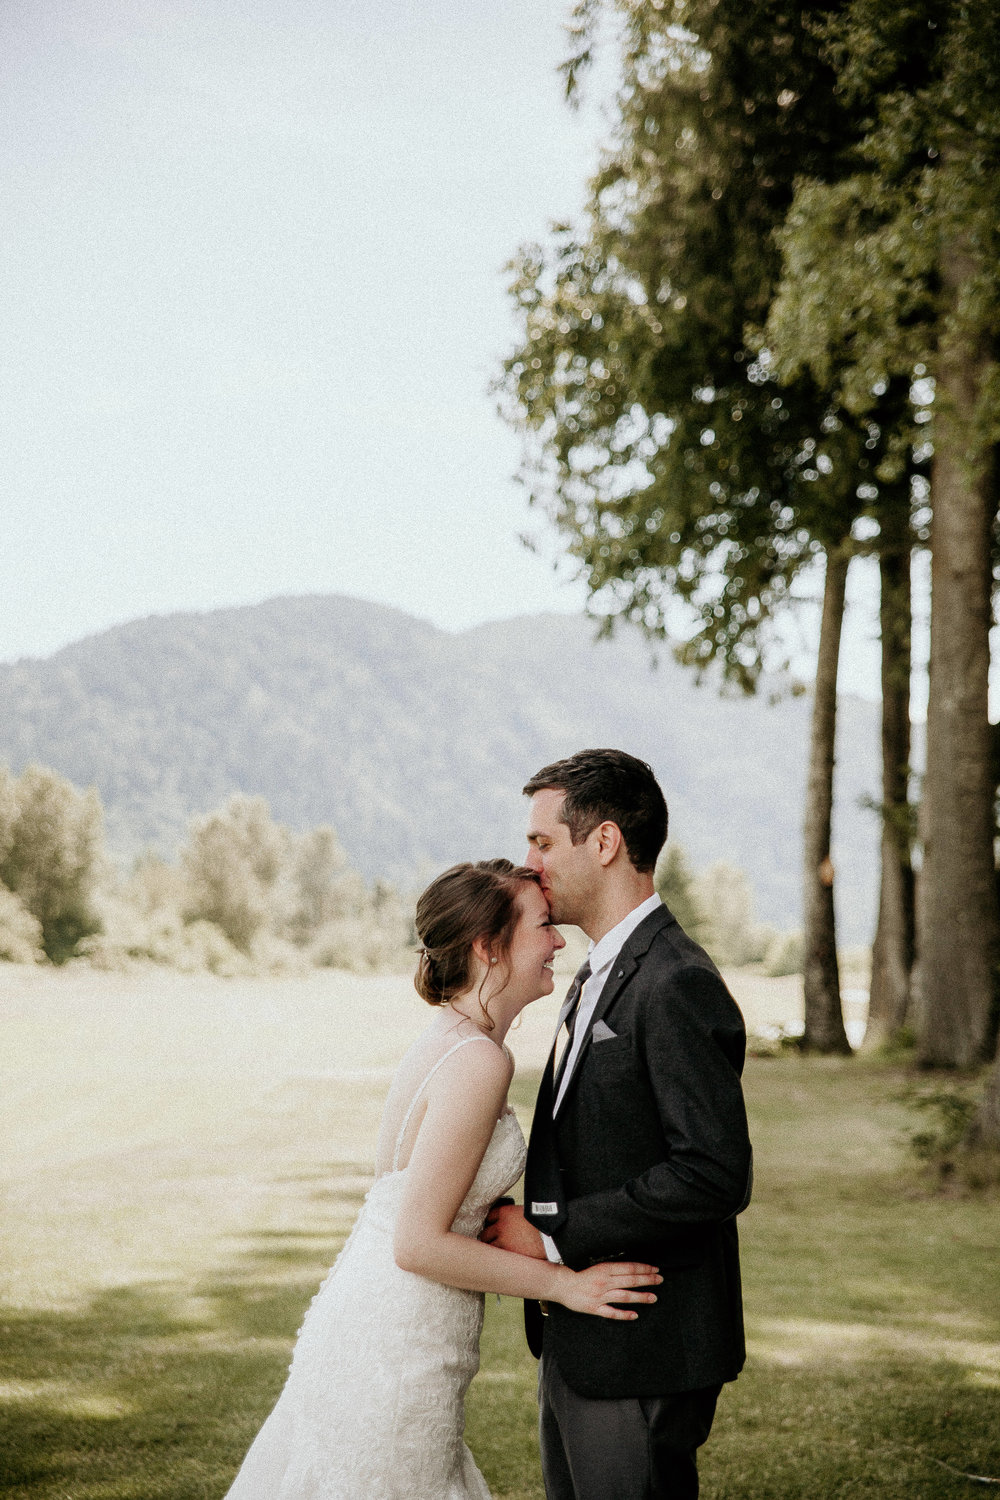 S&C Wedding Day Preview-31.jpg